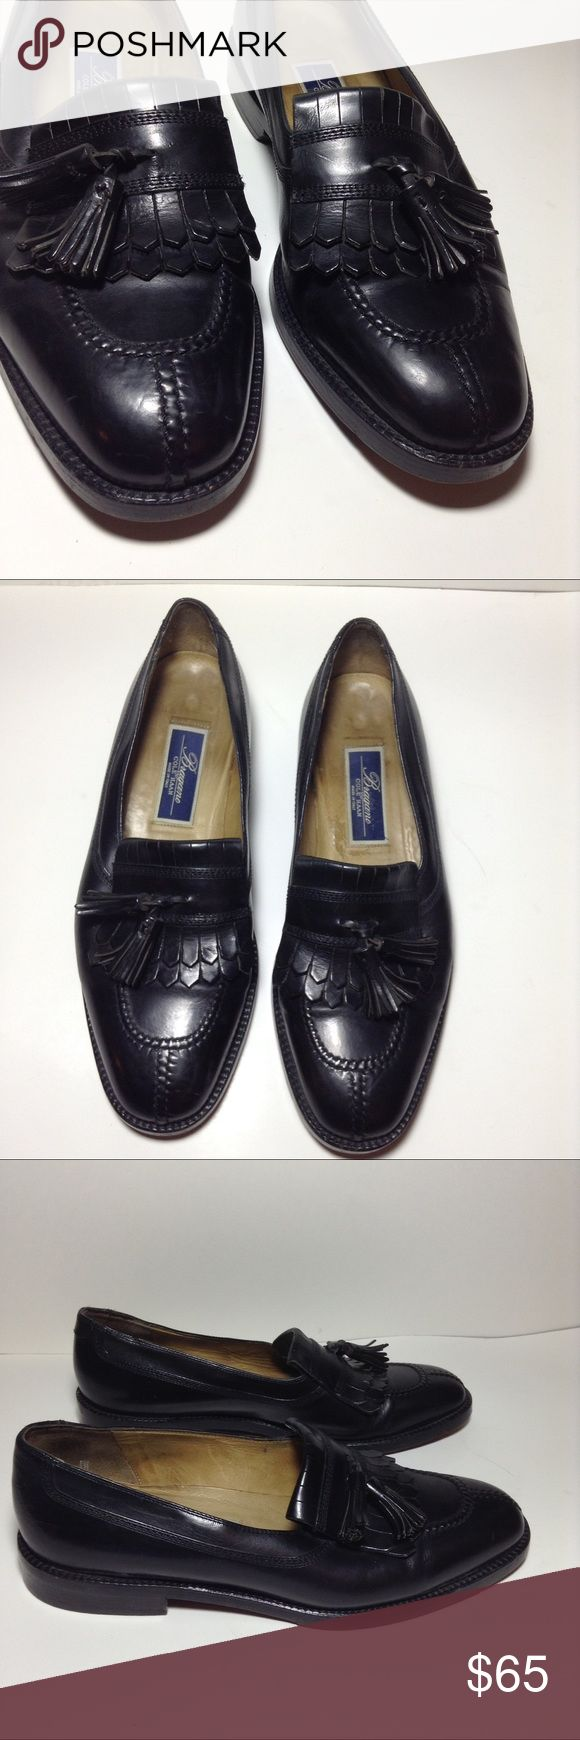 Bragano by Cole Haan Black Leather Loafers kiltie Bragano by Cole Haan black leather Kiltie tassels loafers shoes slip ons. Size 9.5D. Pre-owned in excellent condition with minimal wear. If you have any questions please leave a message below. Cole Haan Shoes Loafers & Slip-Ons